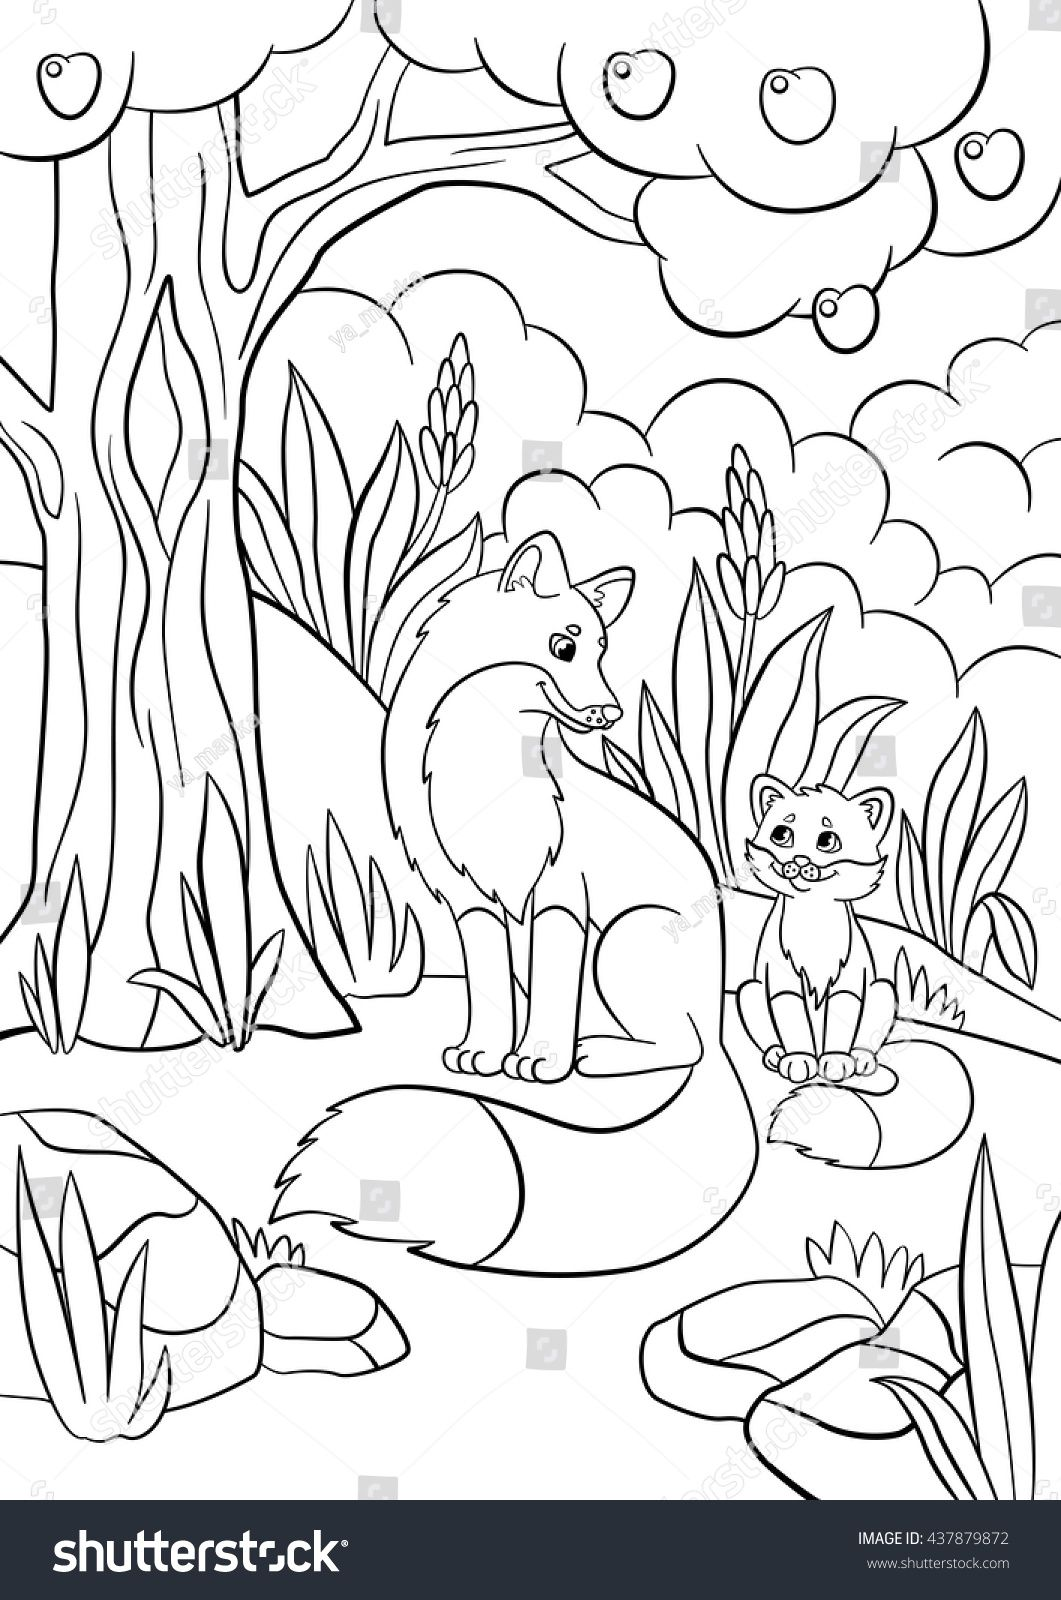 30+ Inspiration Image of Cute Animal Coloring Pages | Animal ... | 1600x1061